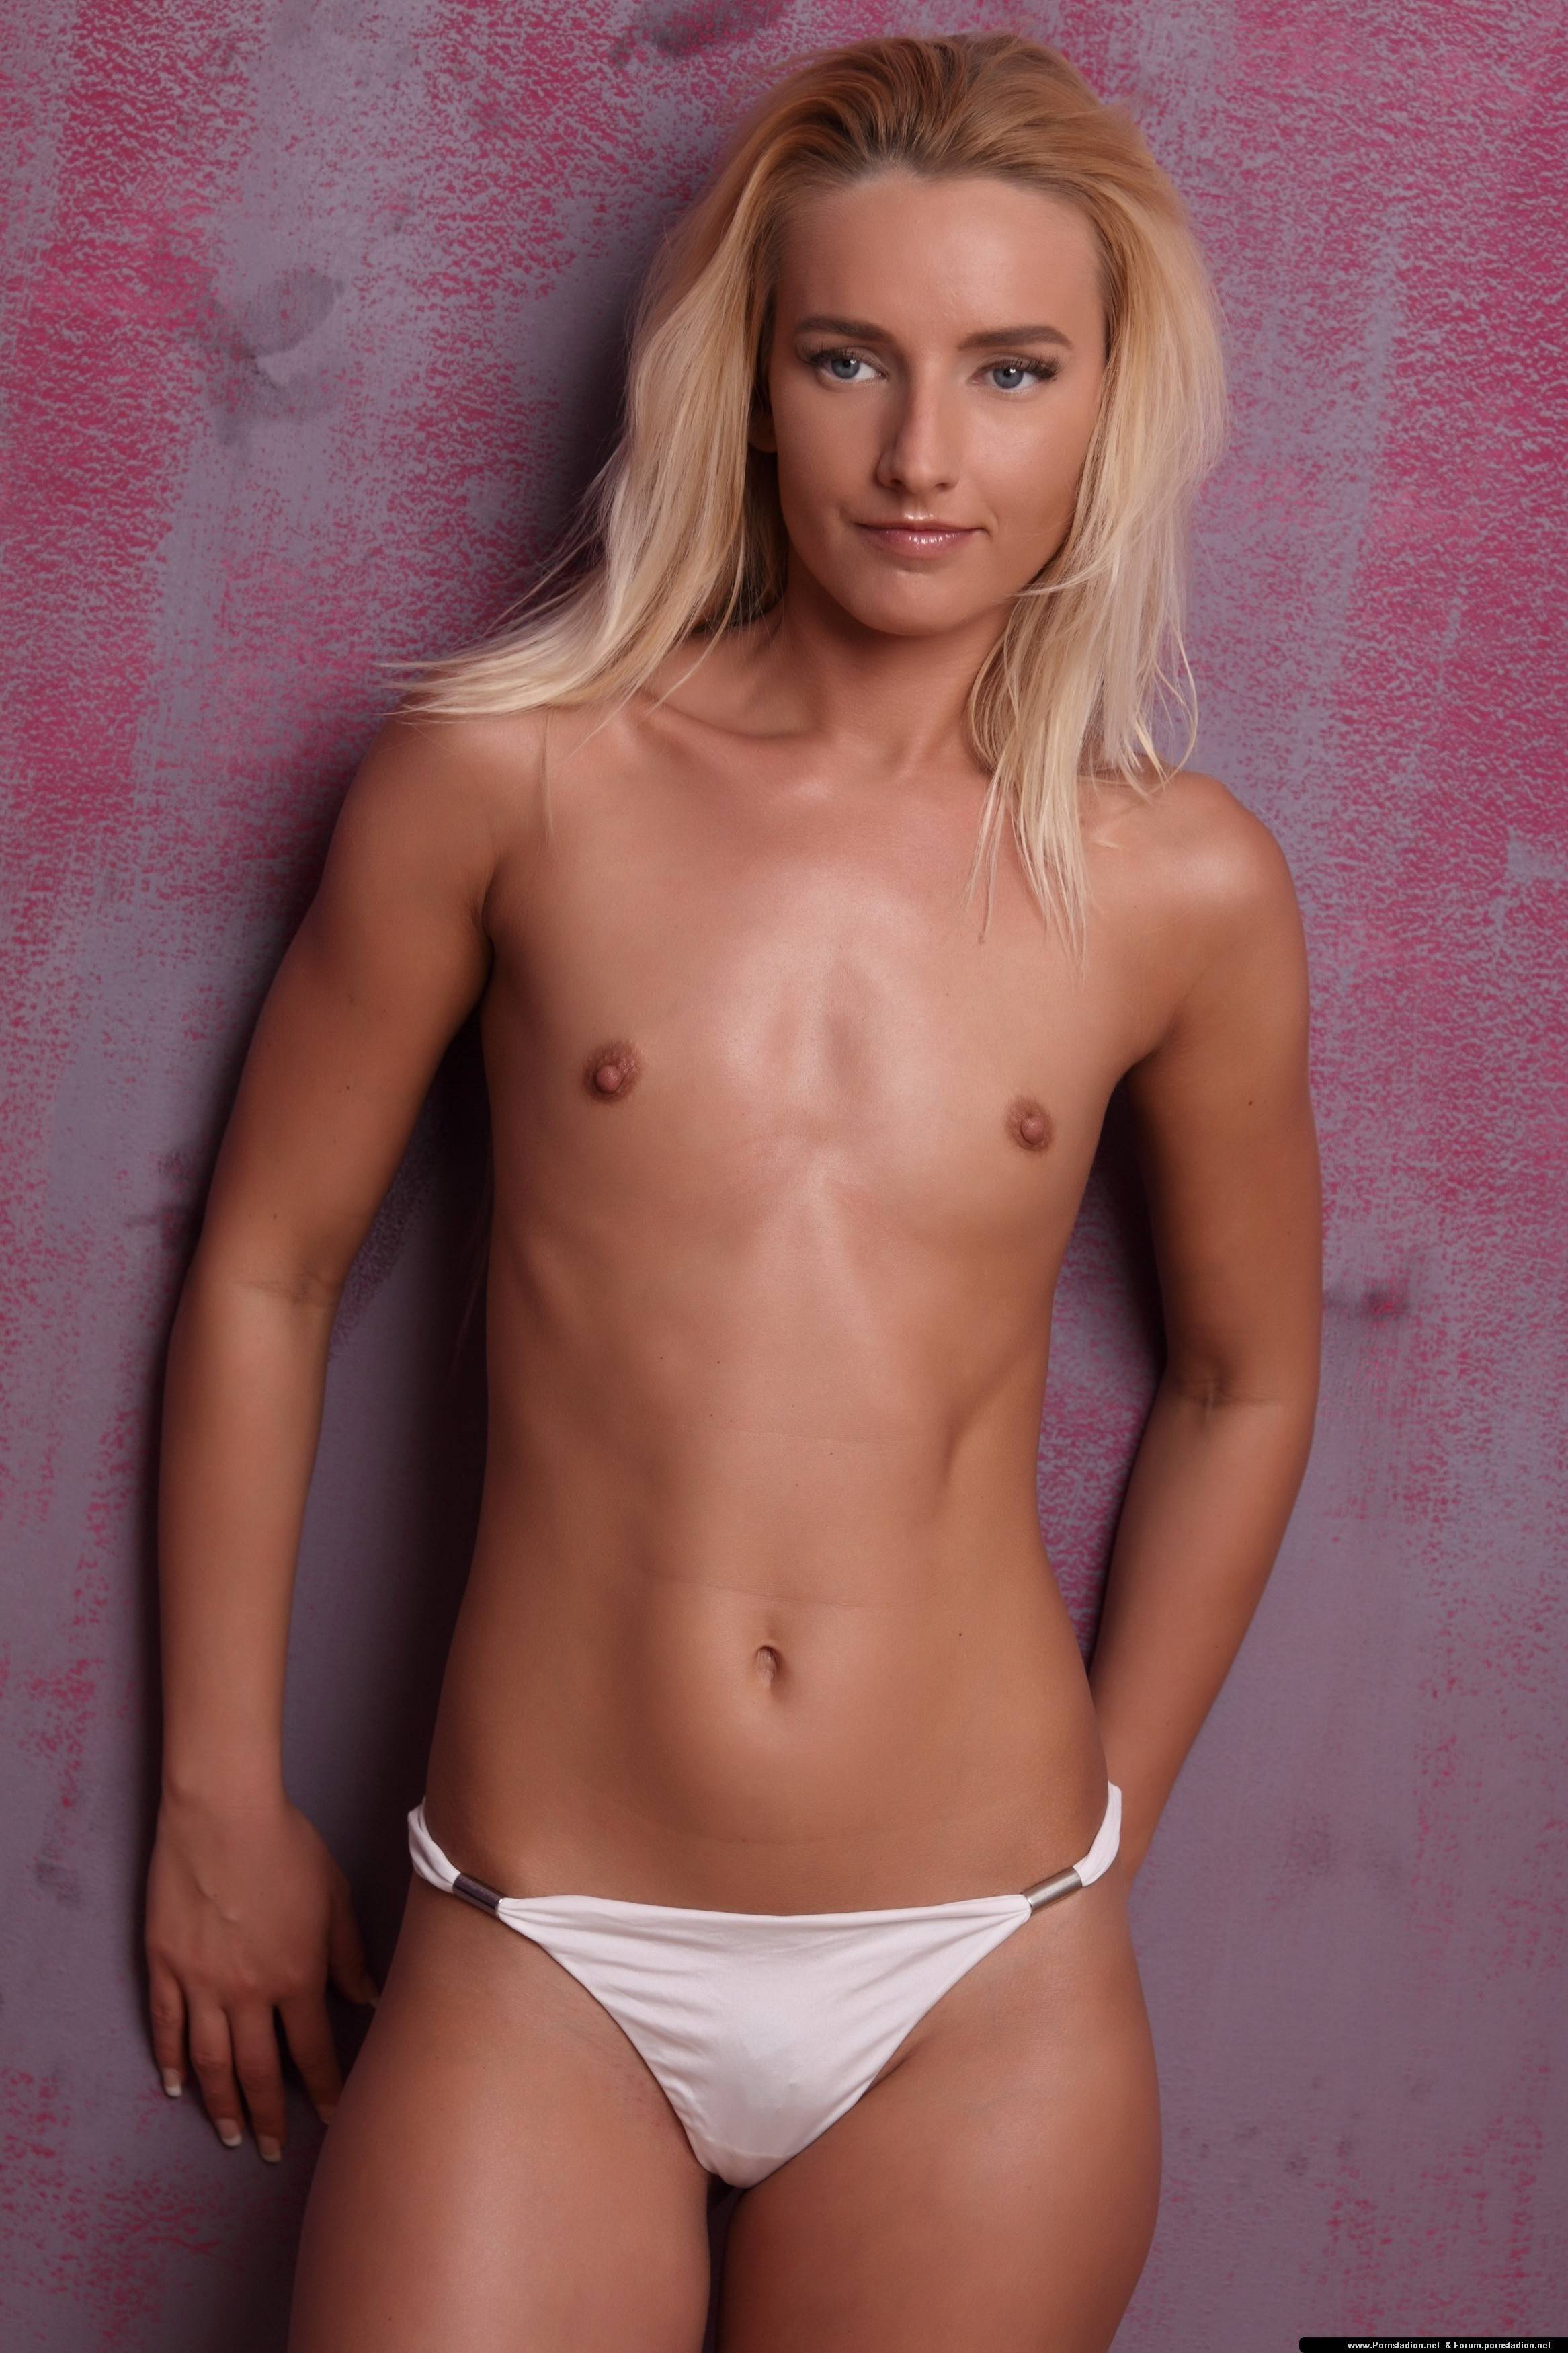 Flat chested female nudist